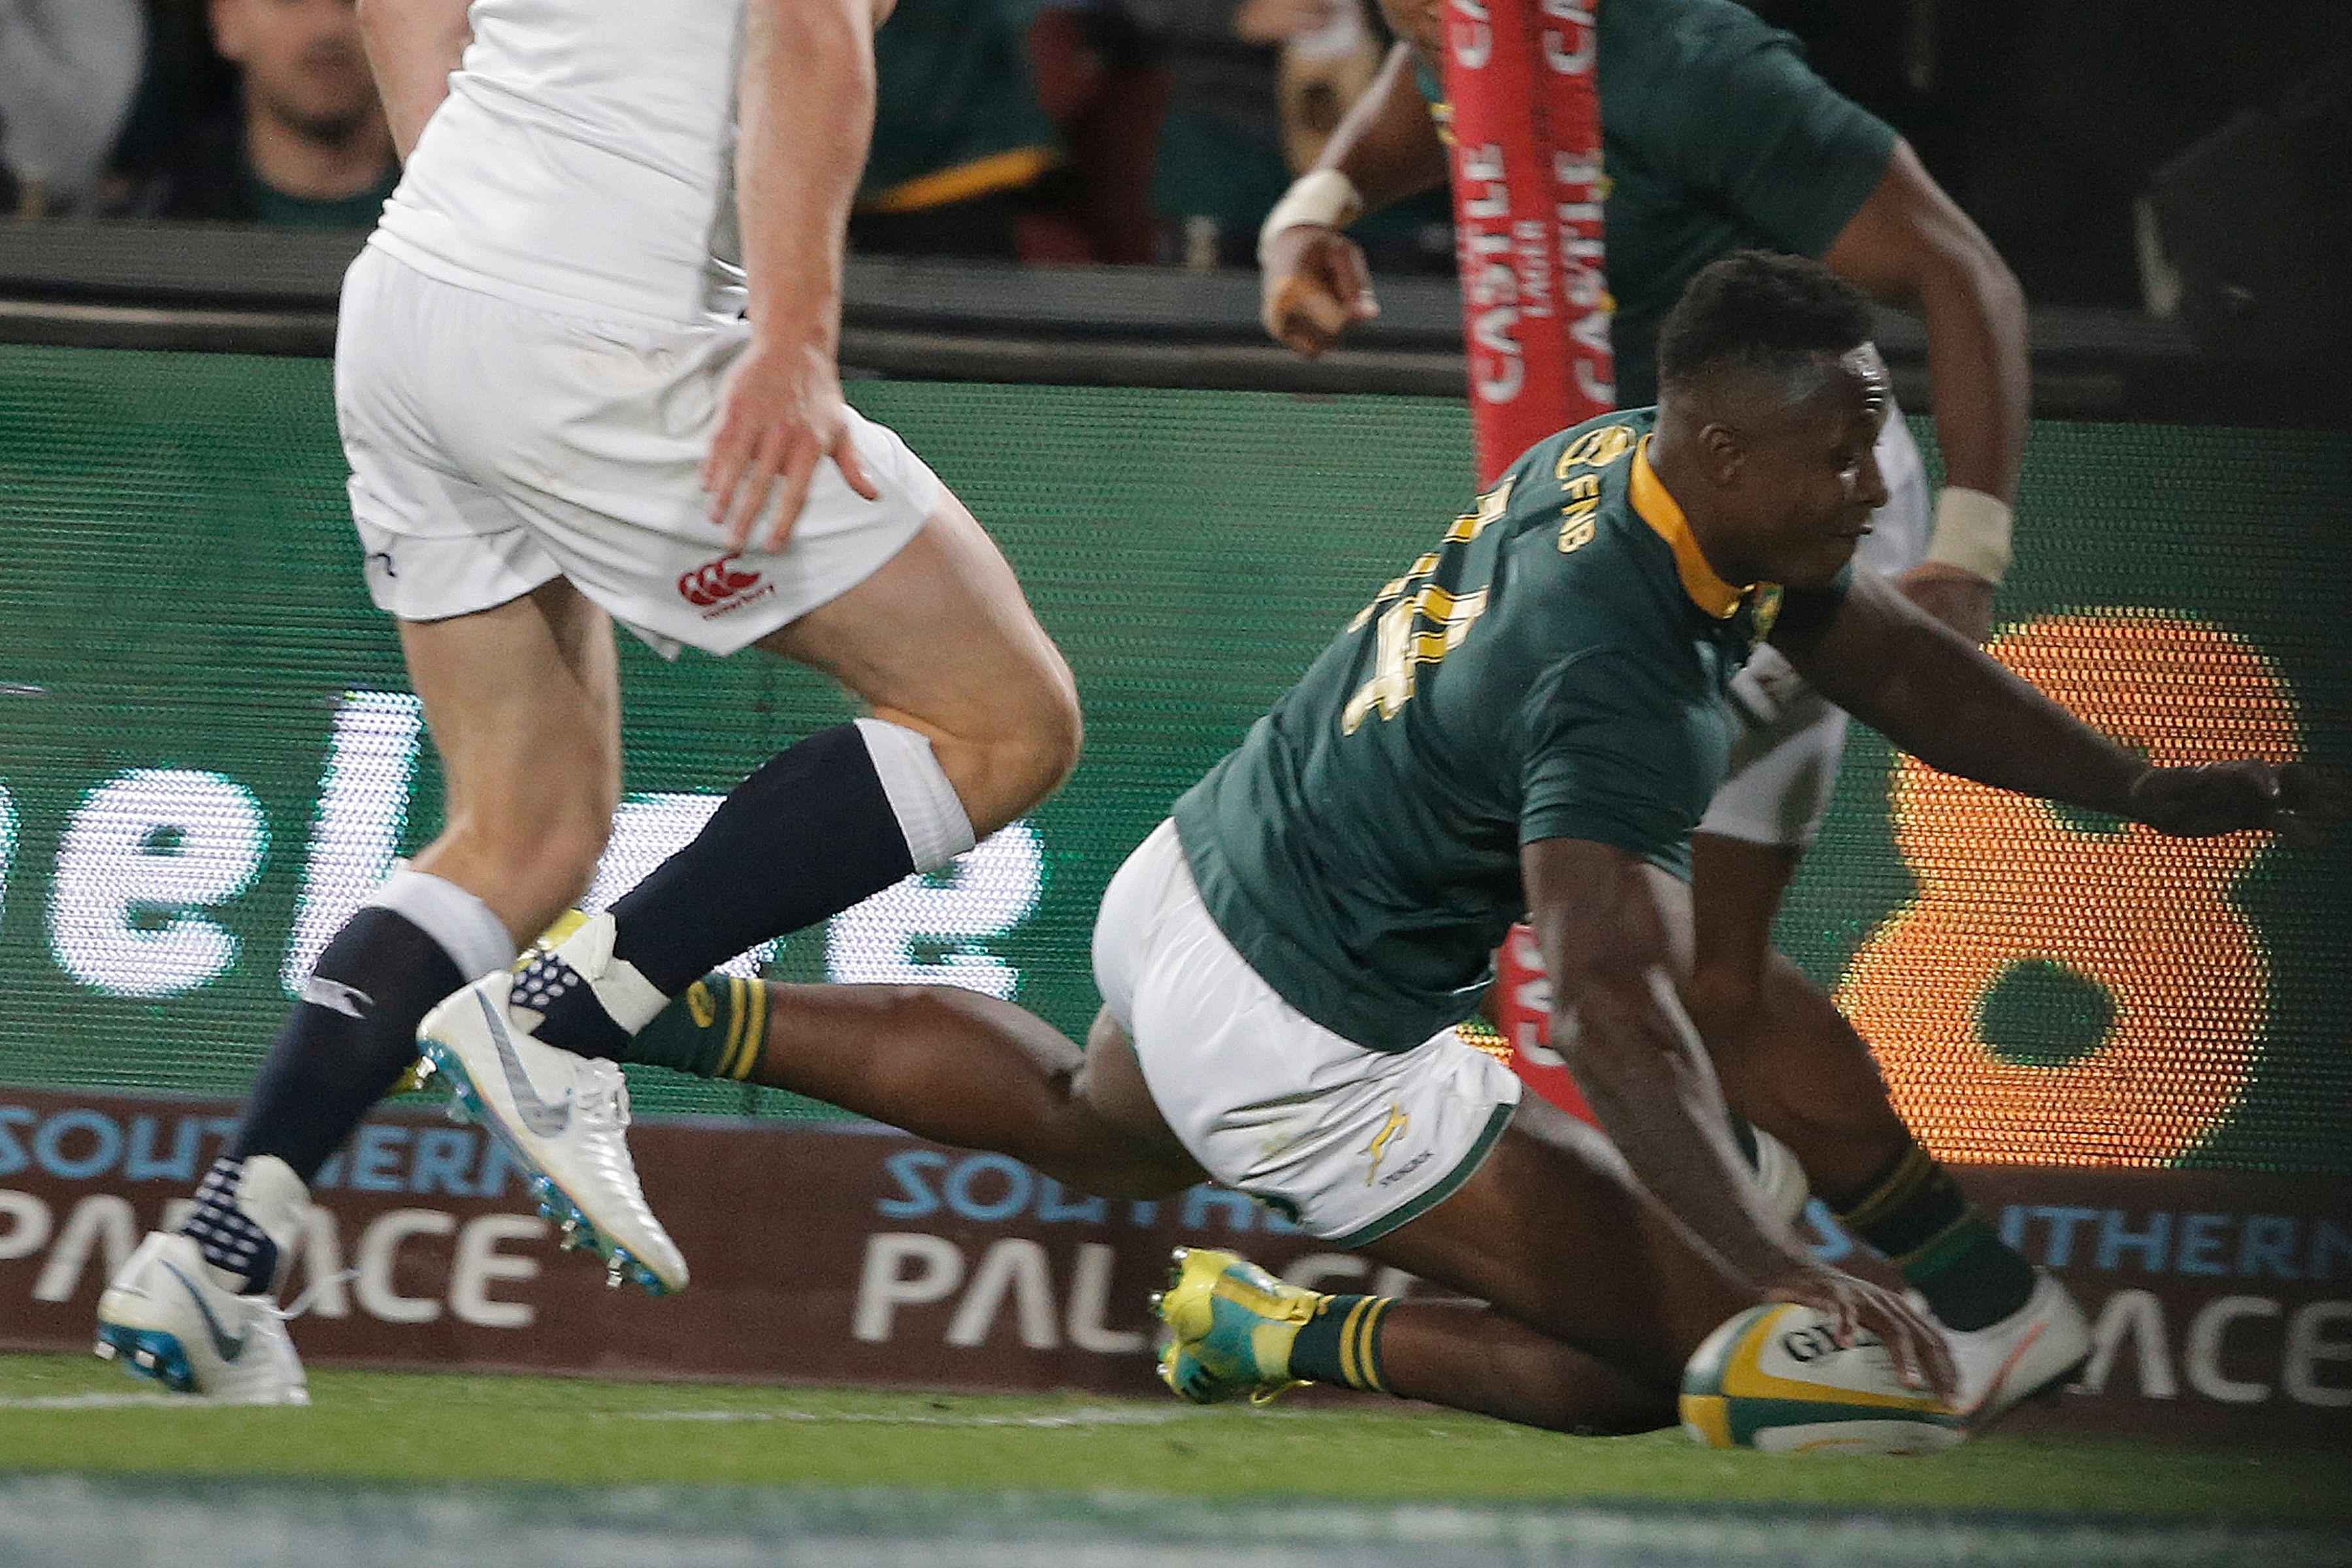 South African winger Sibusiso Nkosi scored two tries as the Springboks took the lead going into half-time